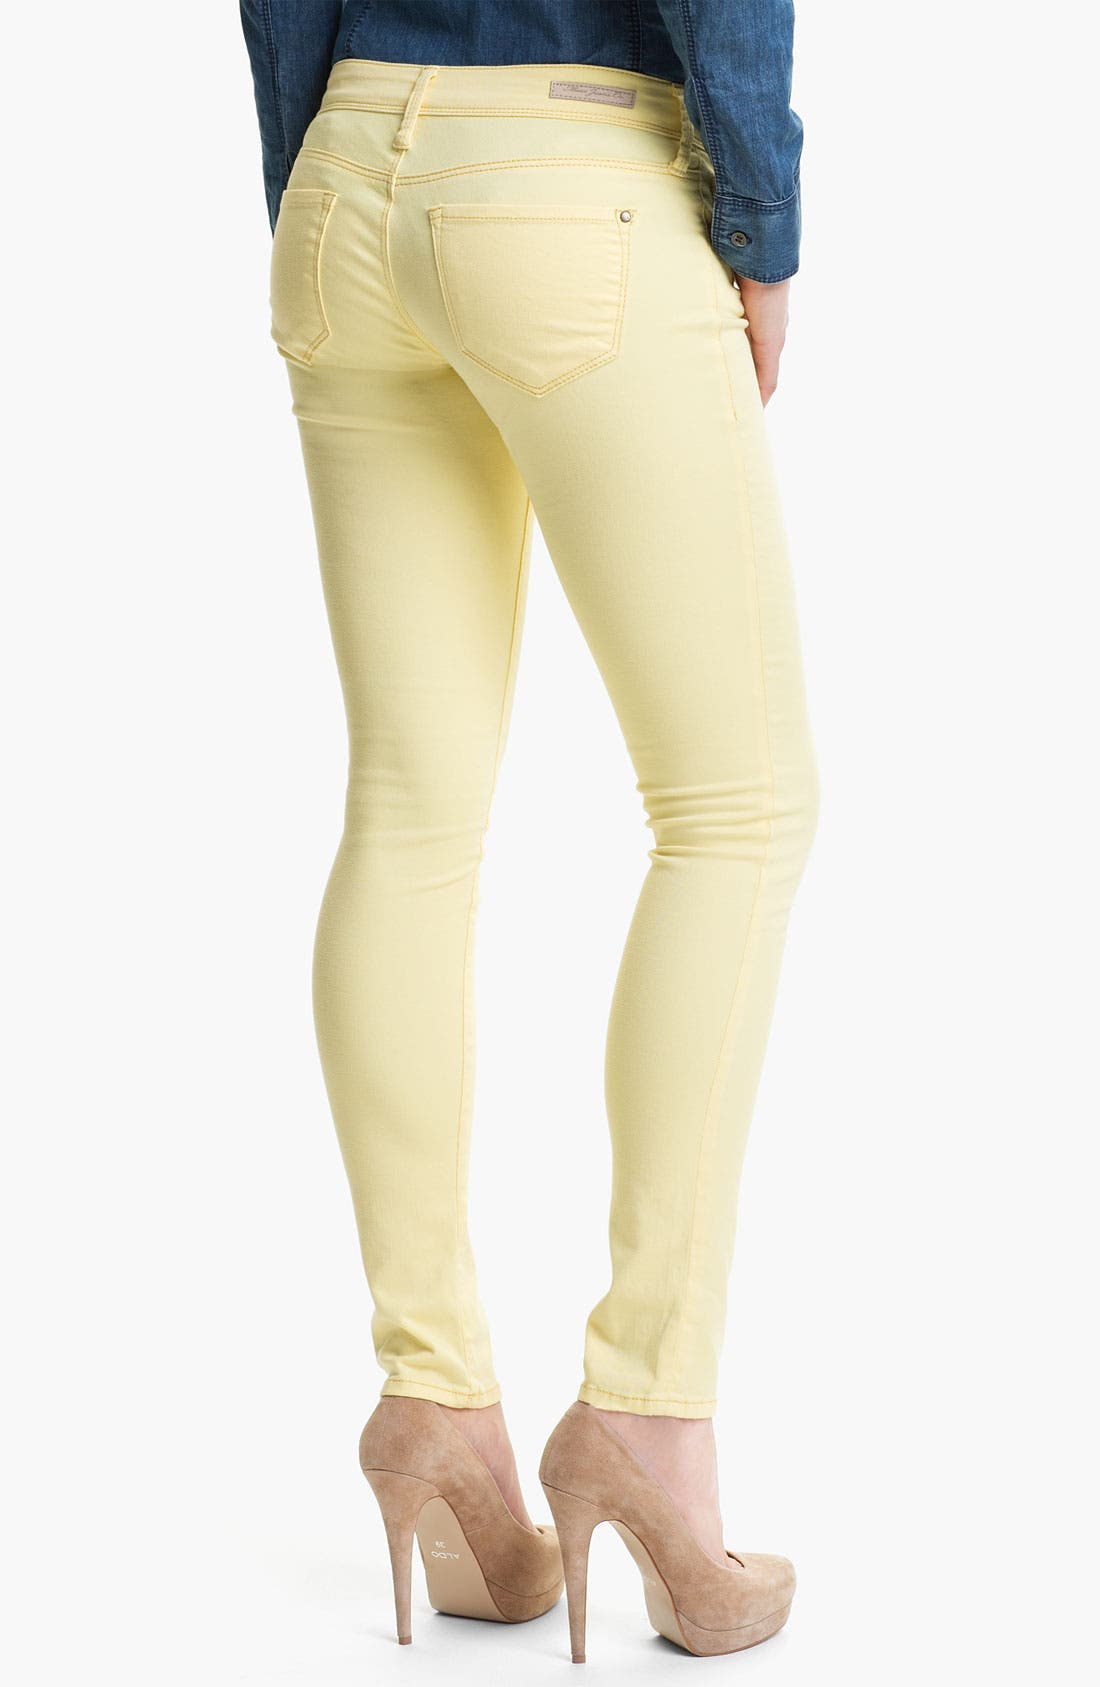 Alternate Image 2  - Mavi Jeans 'Serena' Low Rise Super Skinny Jeans (Online Exclusive)